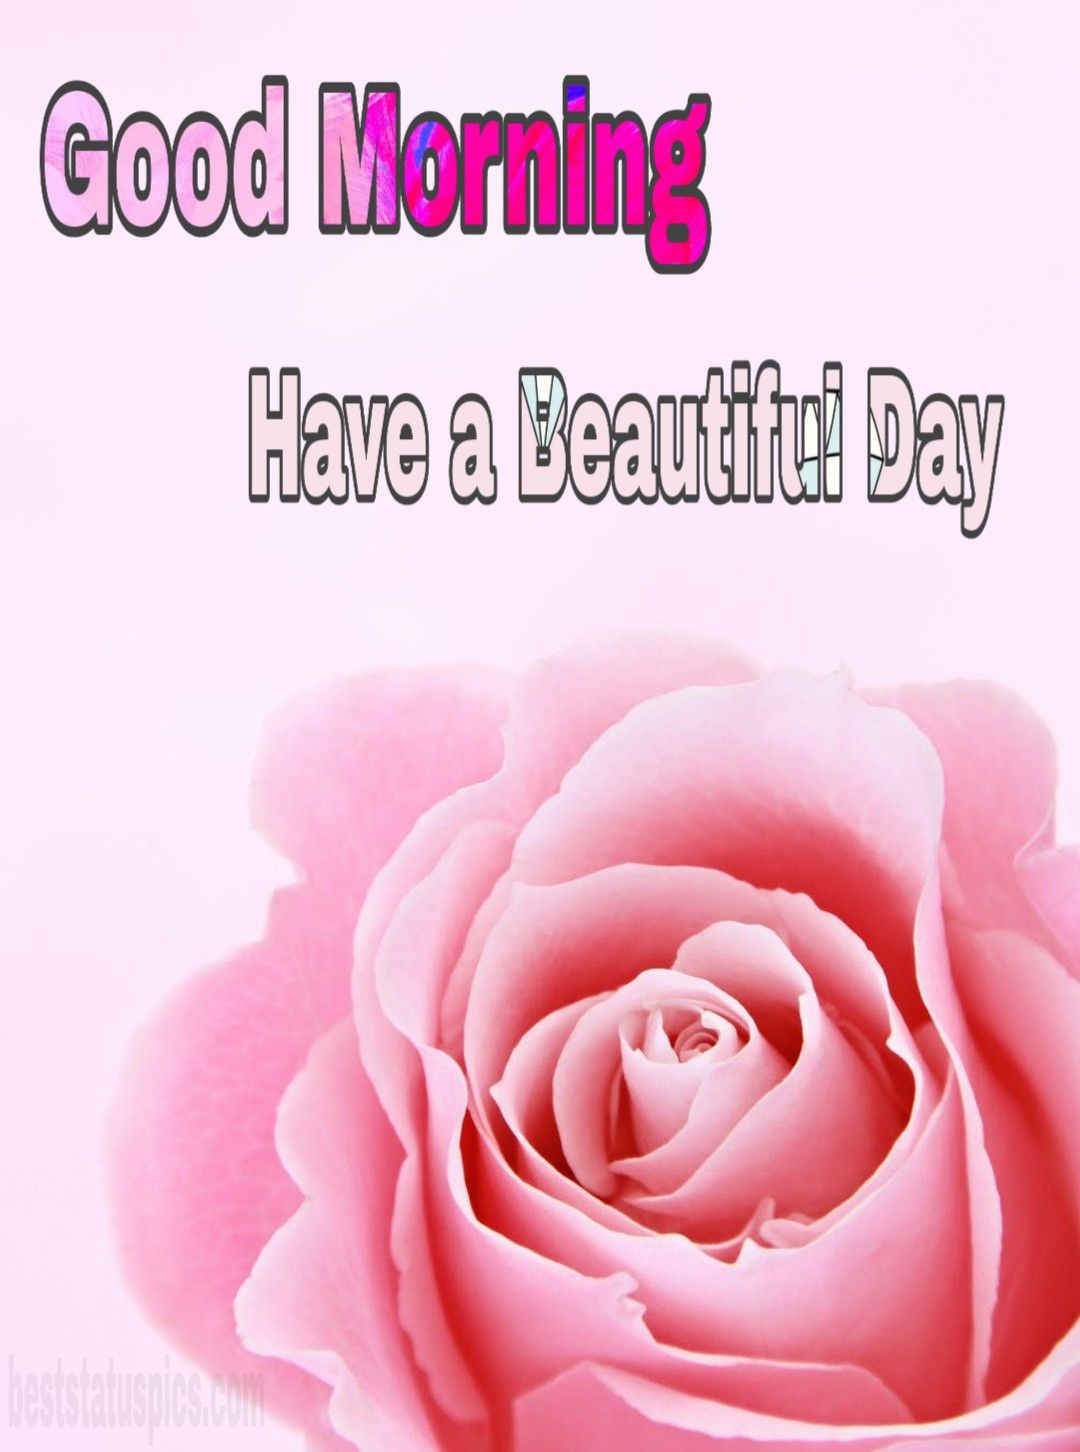 You can download Good Morning Romantic Rose Flower Images